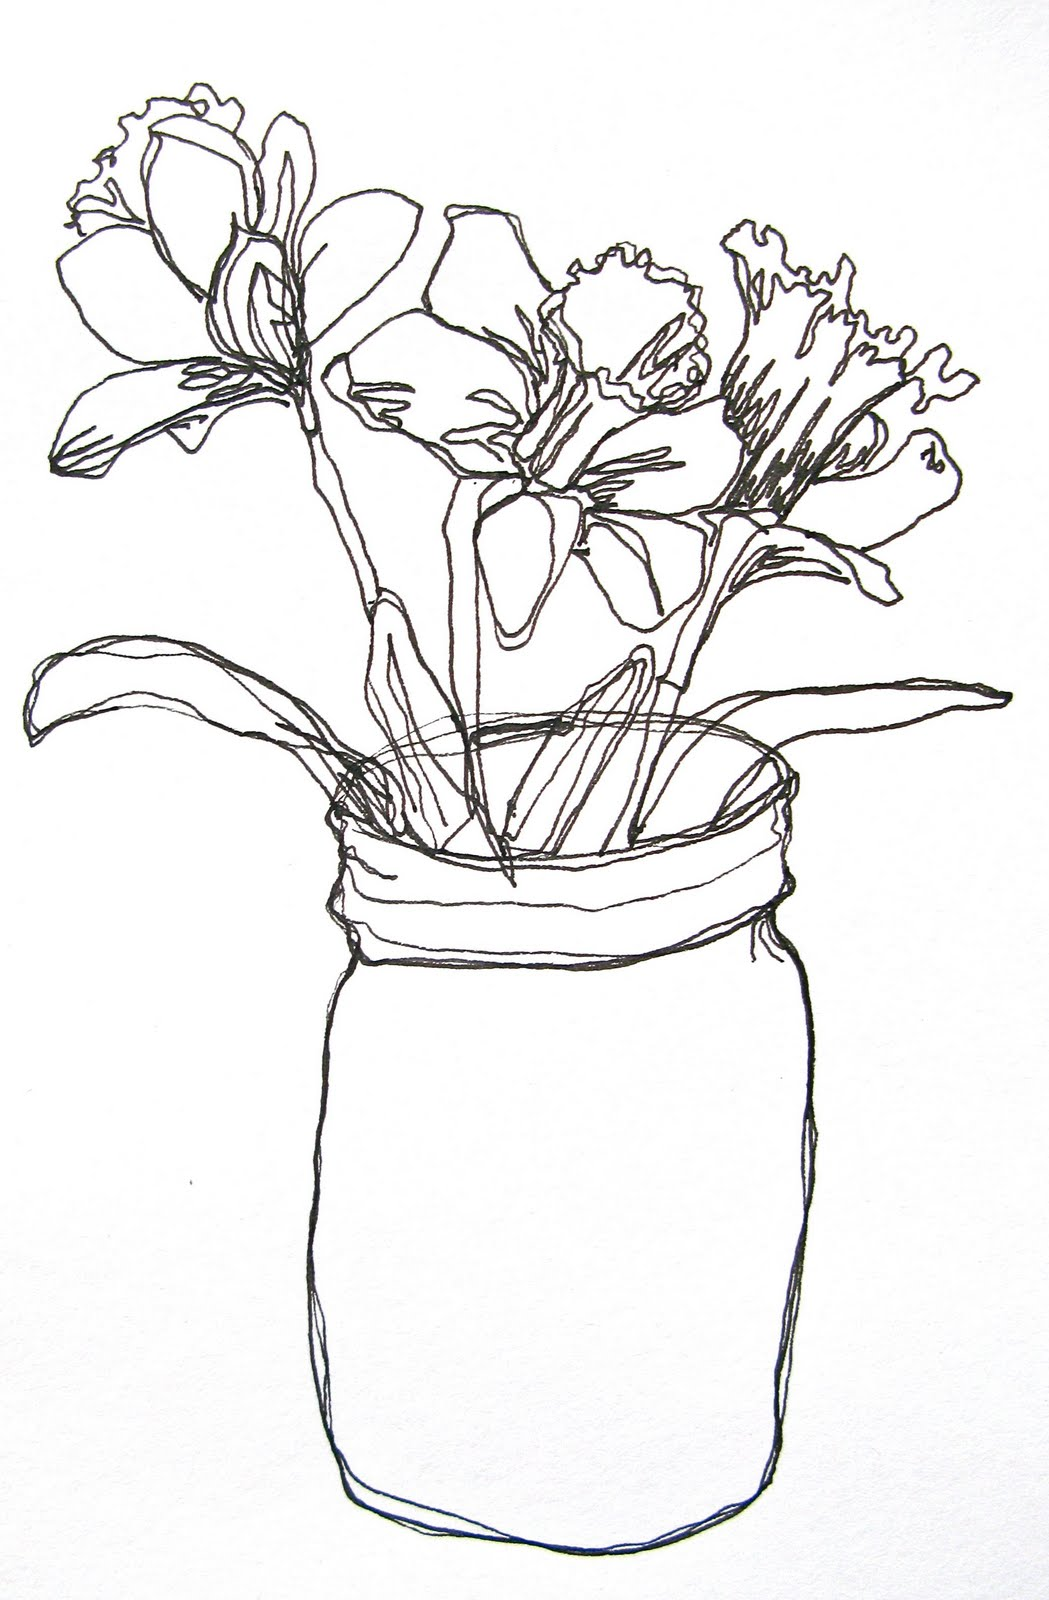 Line Art Flowers Images : Corrieberry pie flower doodles